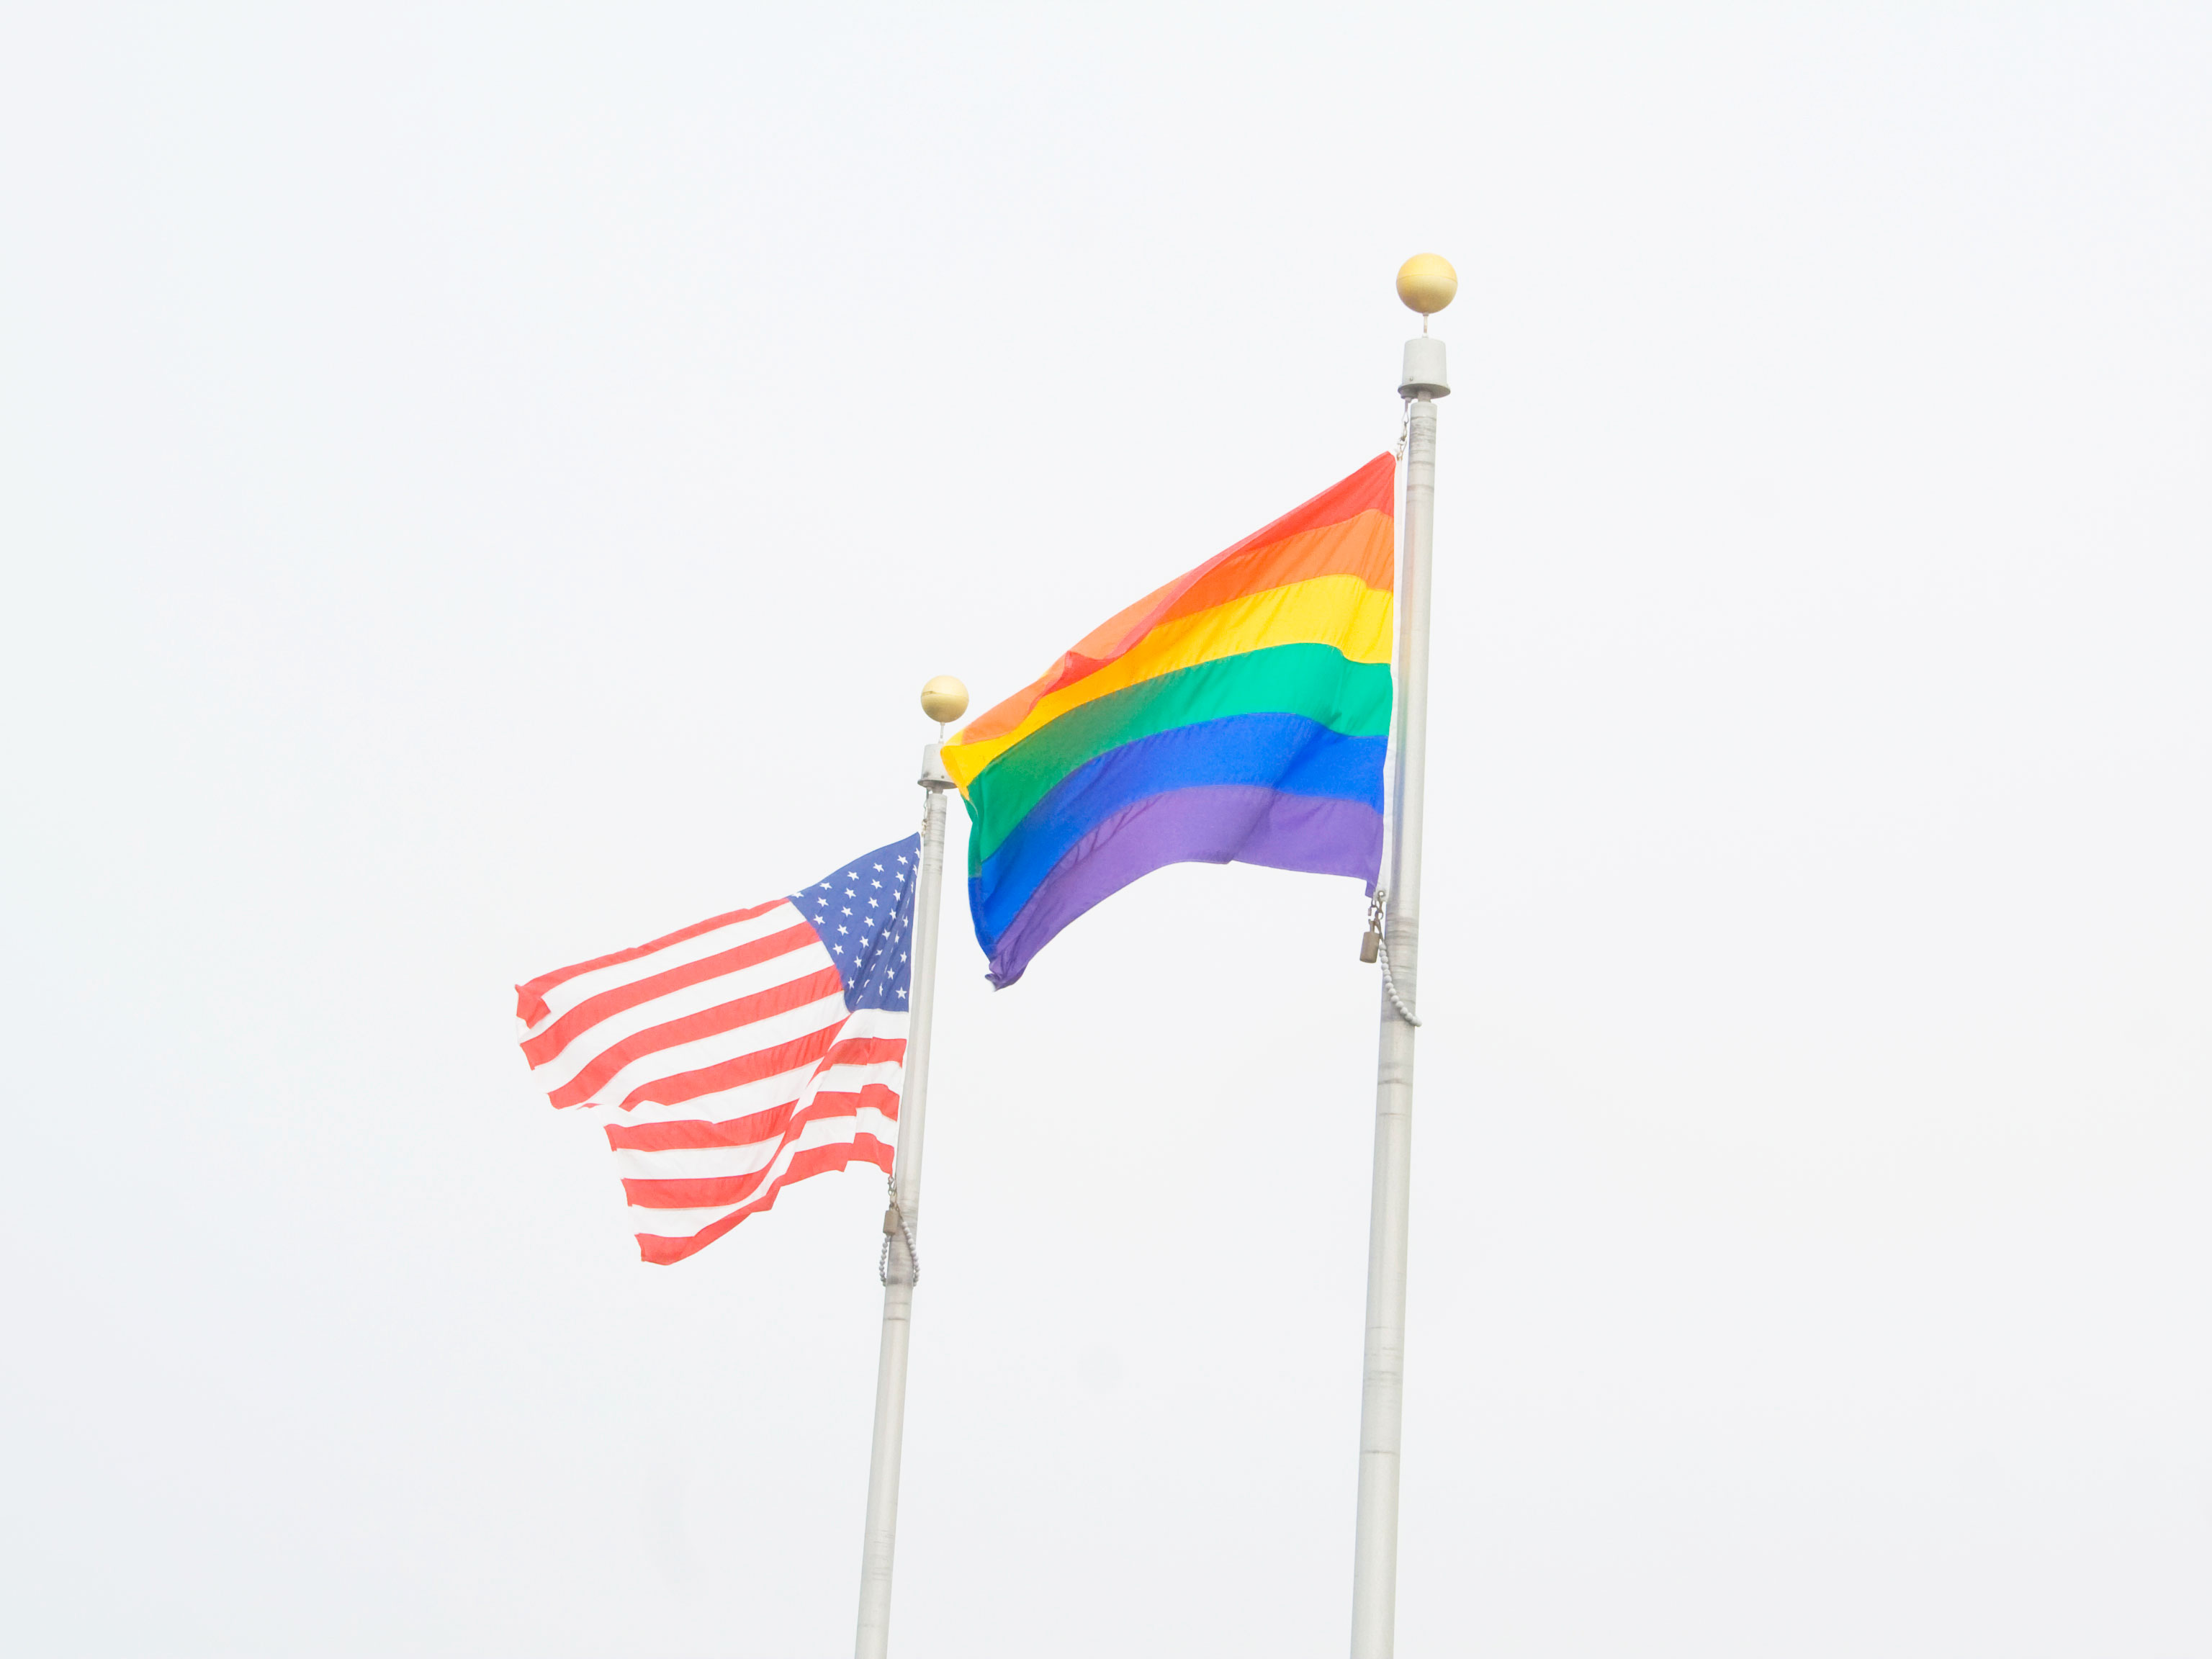 Restaurants Can No Longer Discriminate Against LGBT Diners in Indiana